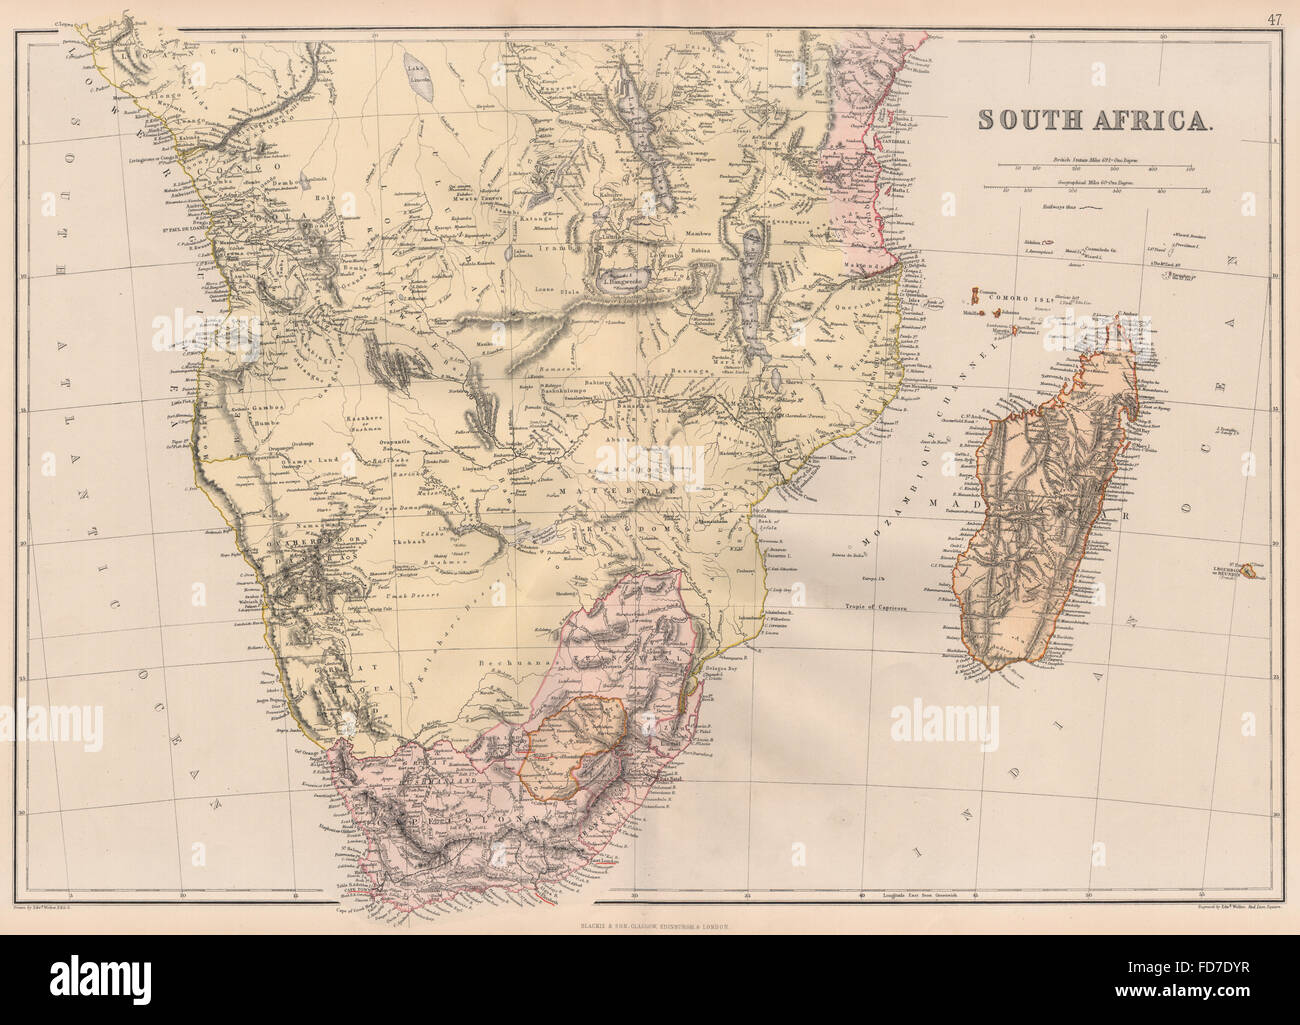 EARLY COLONIAL SOUTHERN AFRICA:Ovaherero Great Namaqua Land Cape Colony 1882 map - Stock Image